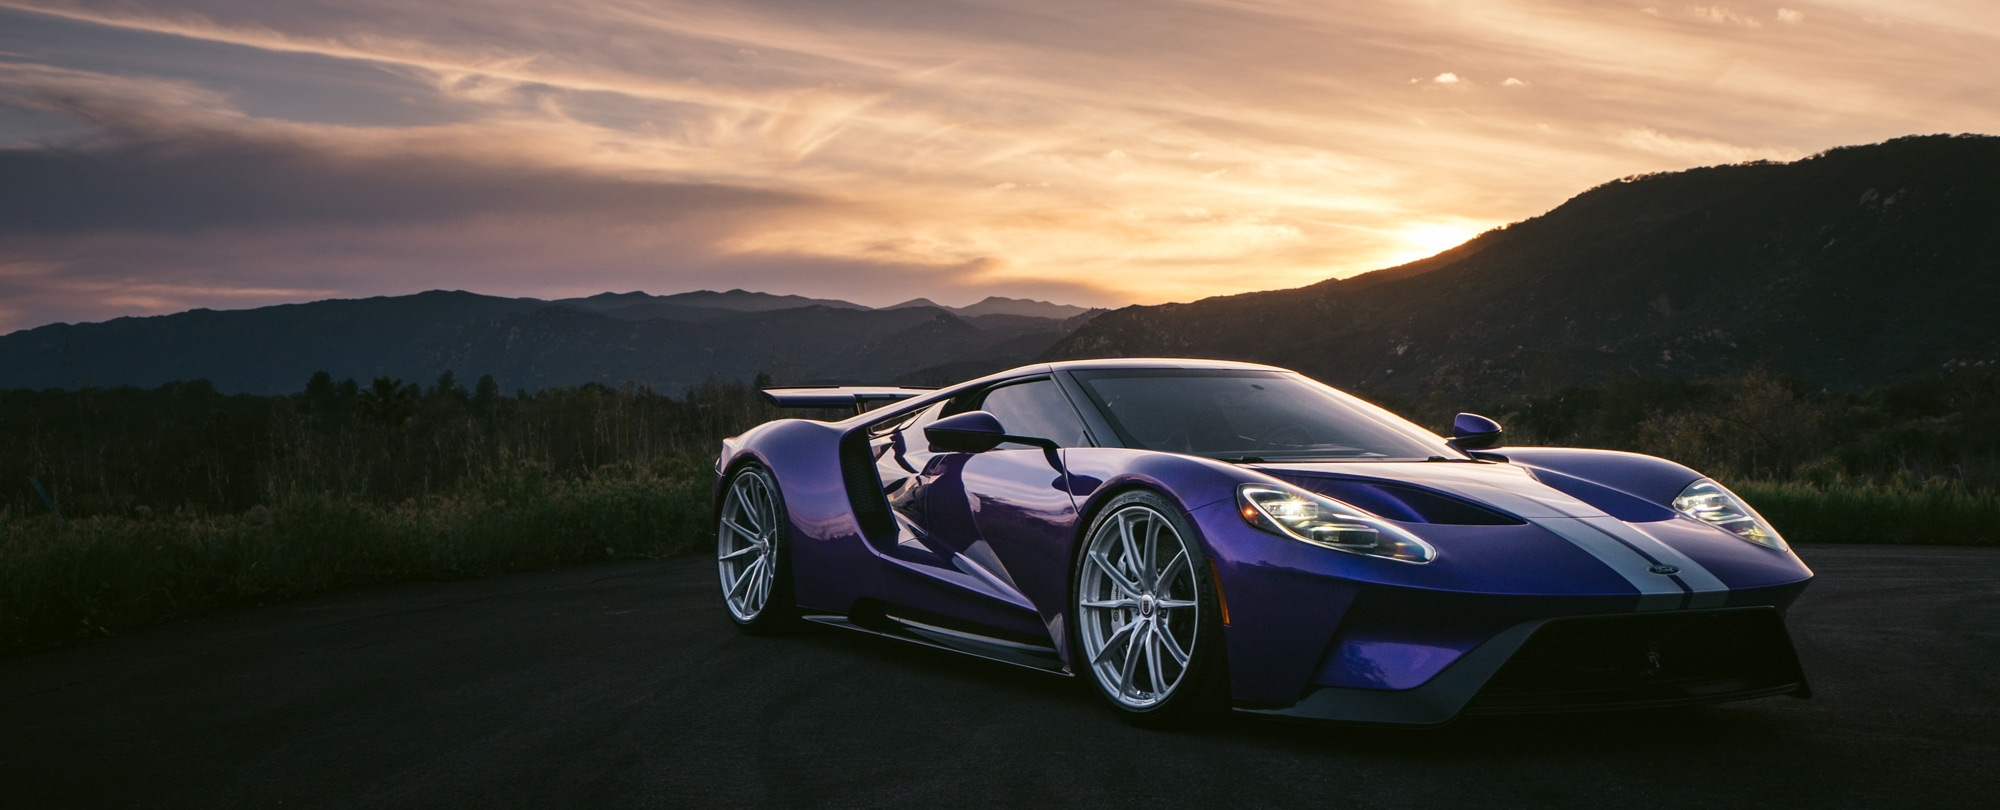 The World S Best Custom Forged Wheels For Motorsport Performance